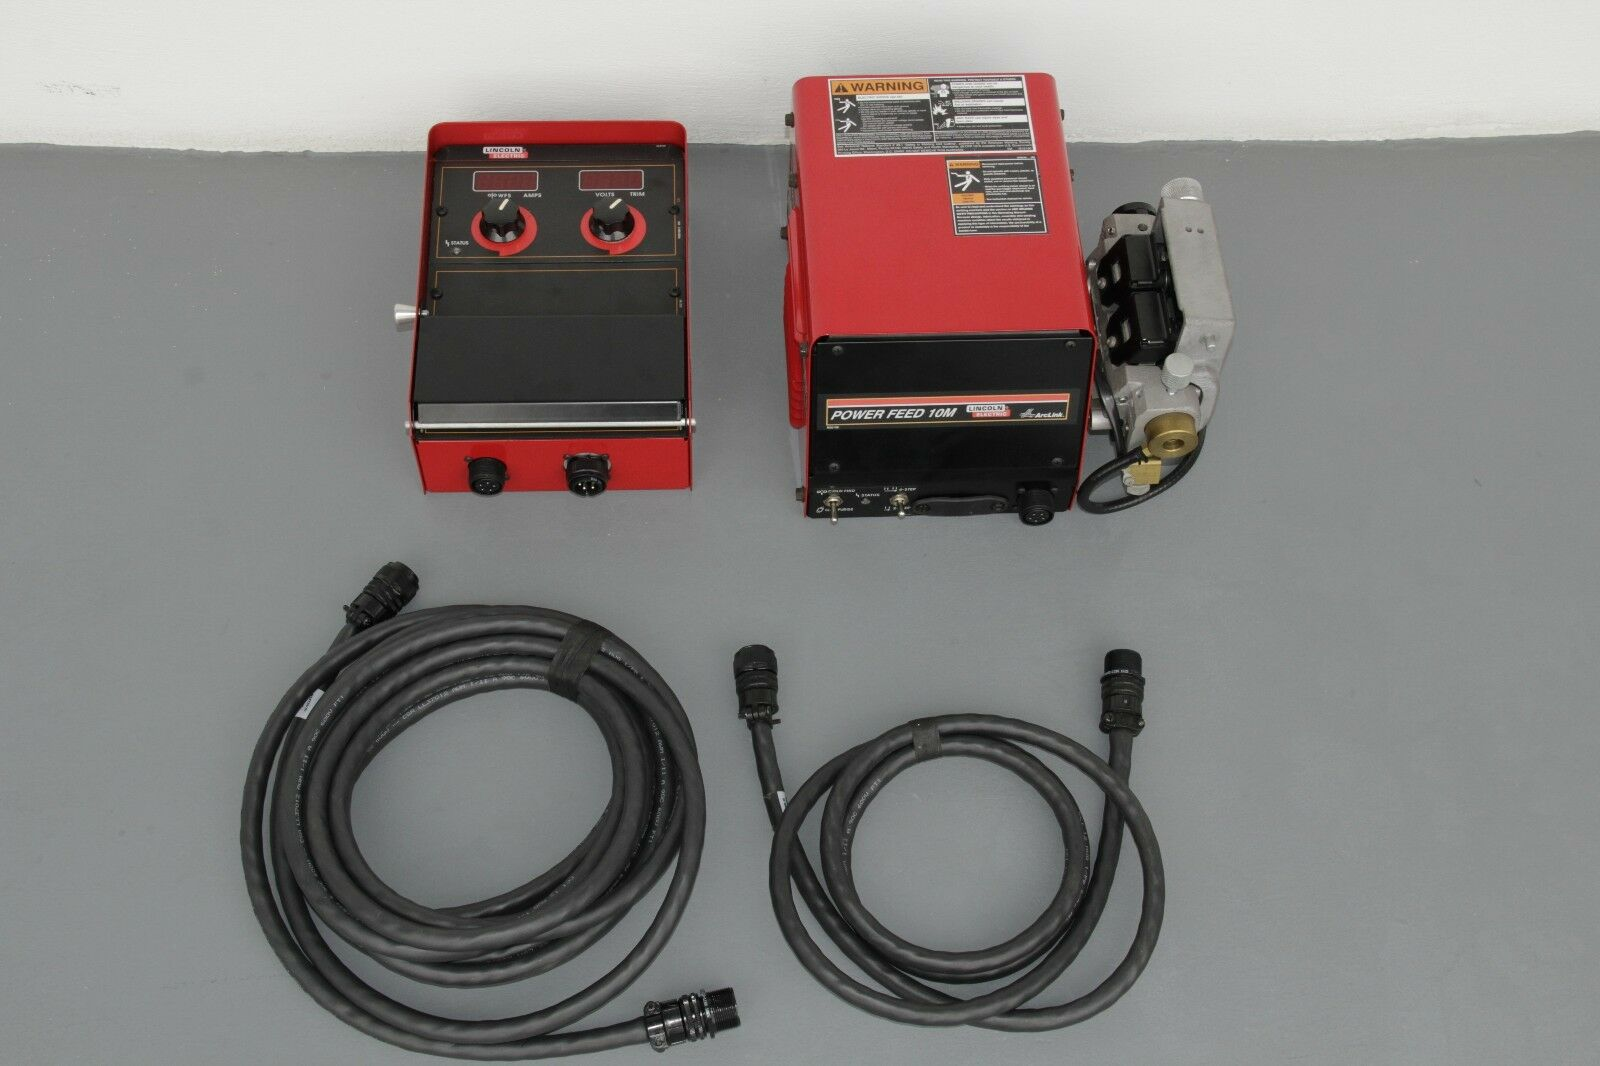 s l1600 lincoln wire feeder welding ebay 90 Amp Mig Welder at bakdesigns.co